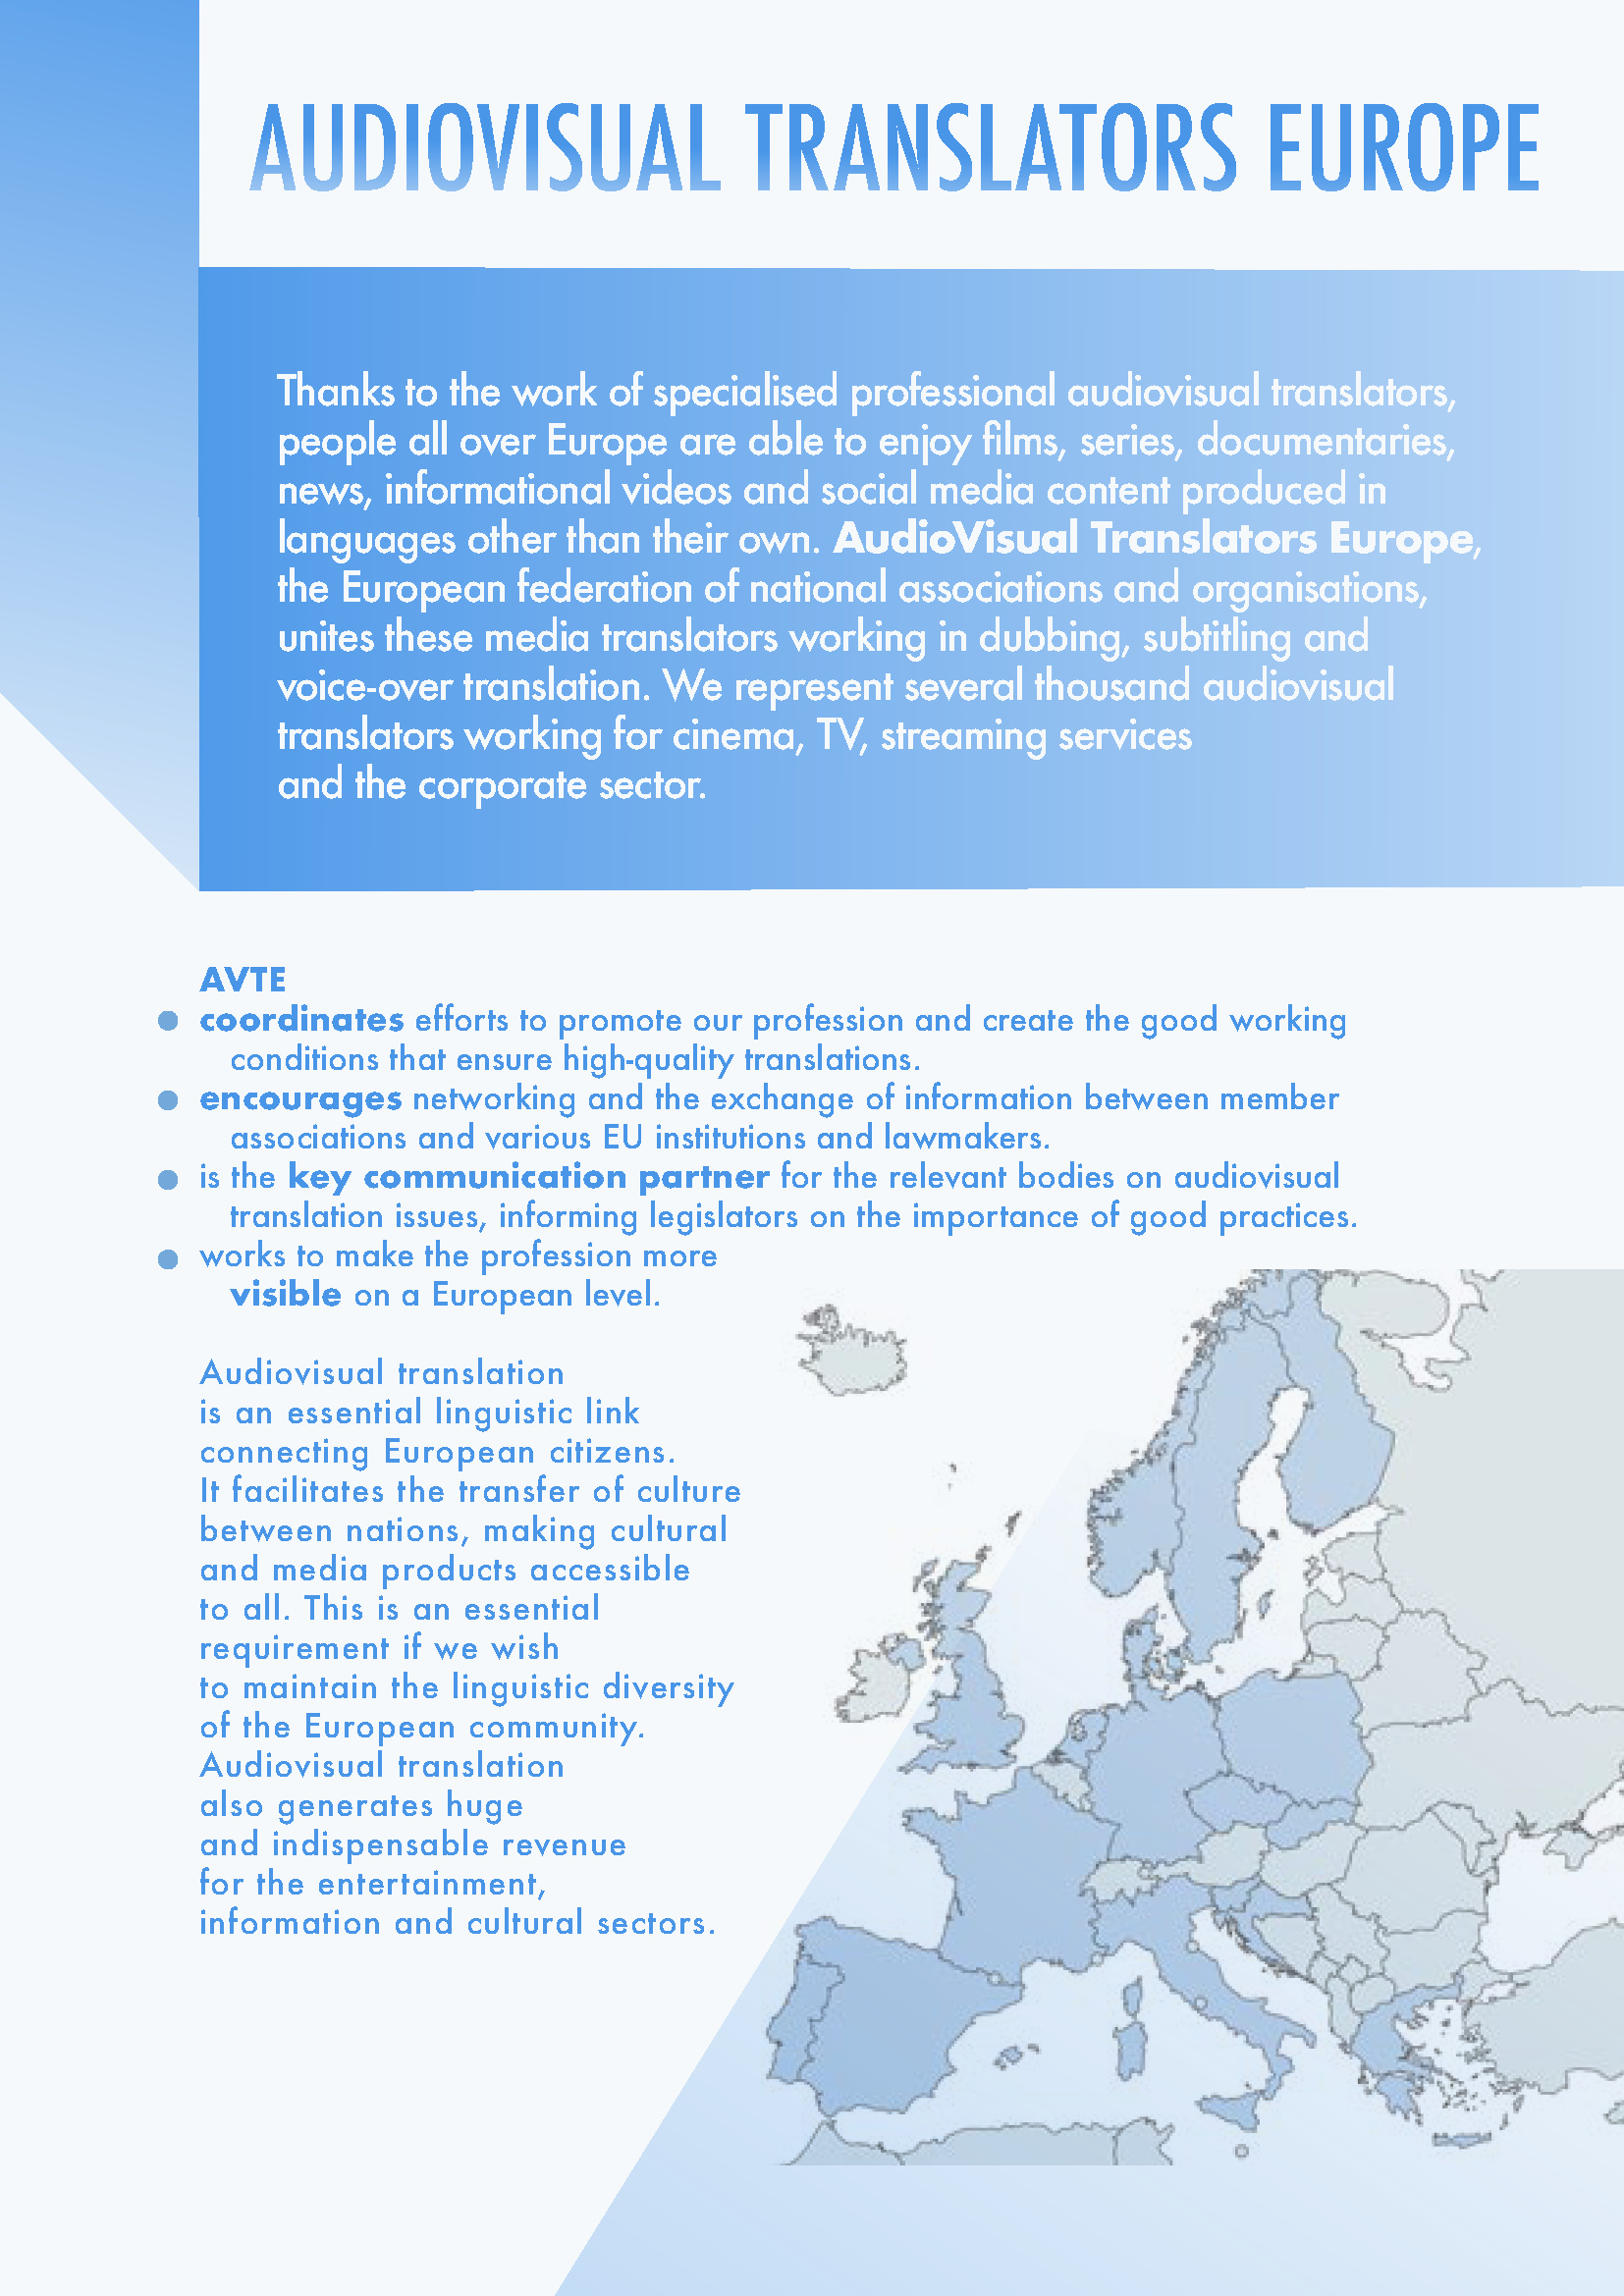 AVTE brochure – The audiovisual translation ecosystem in Europe